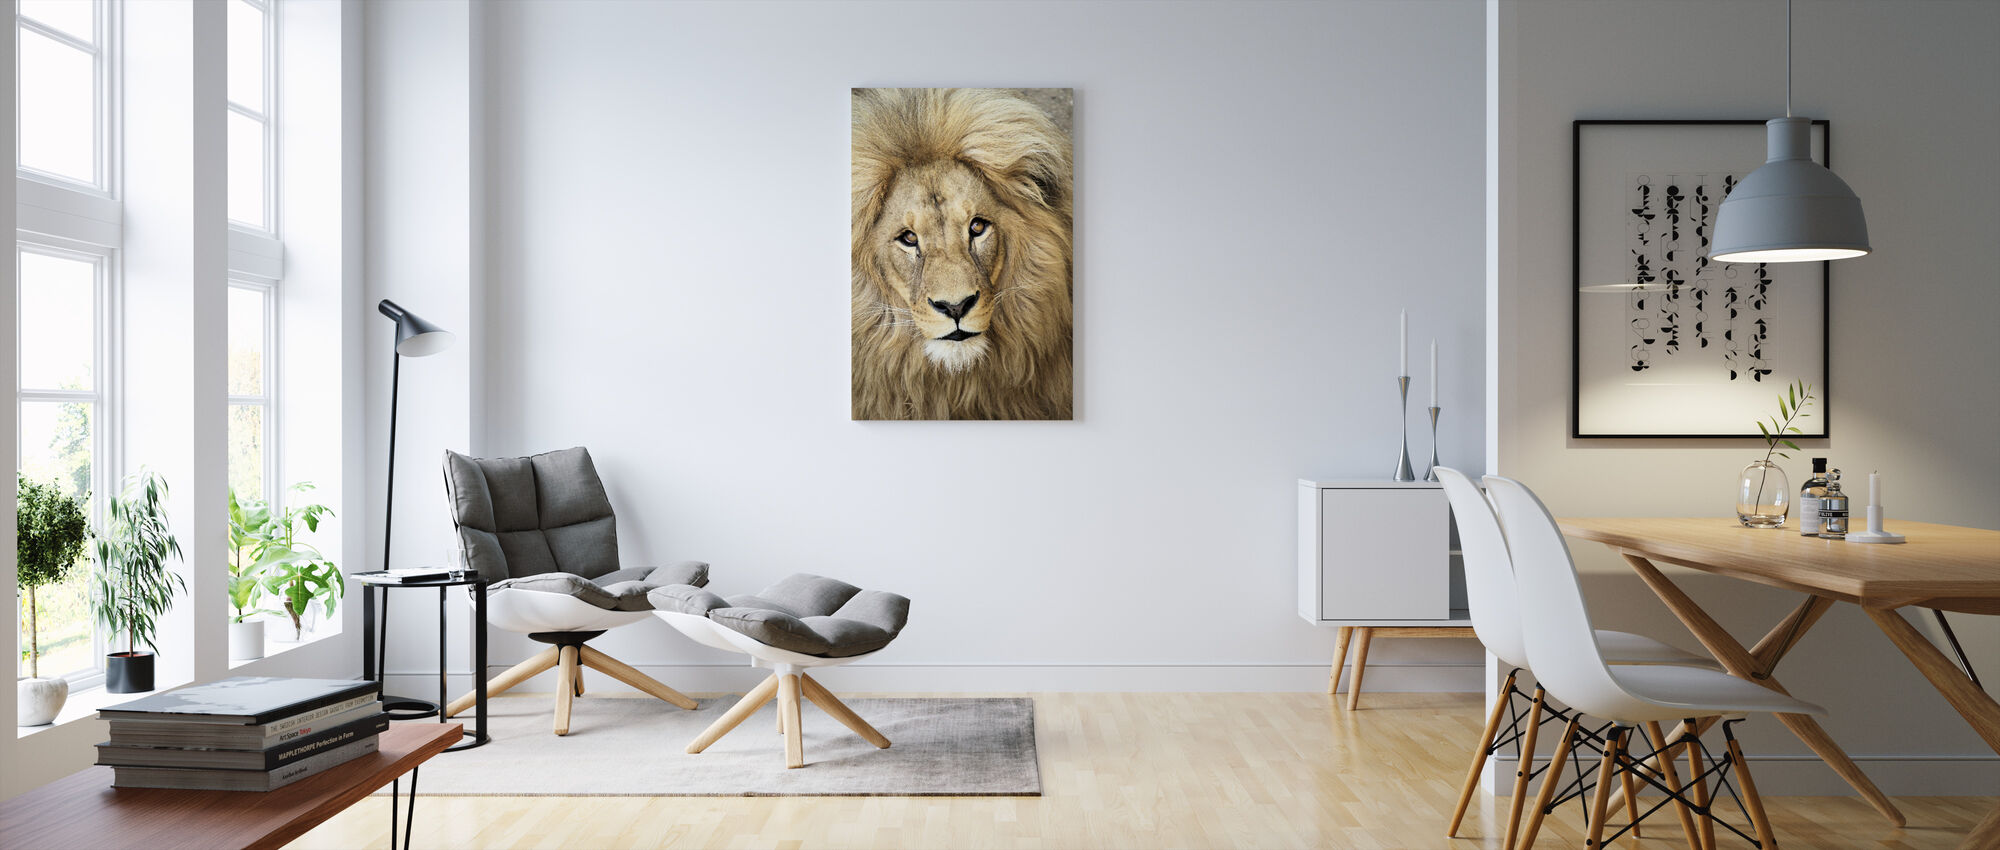 Lions Face - Canvas print - Living Room